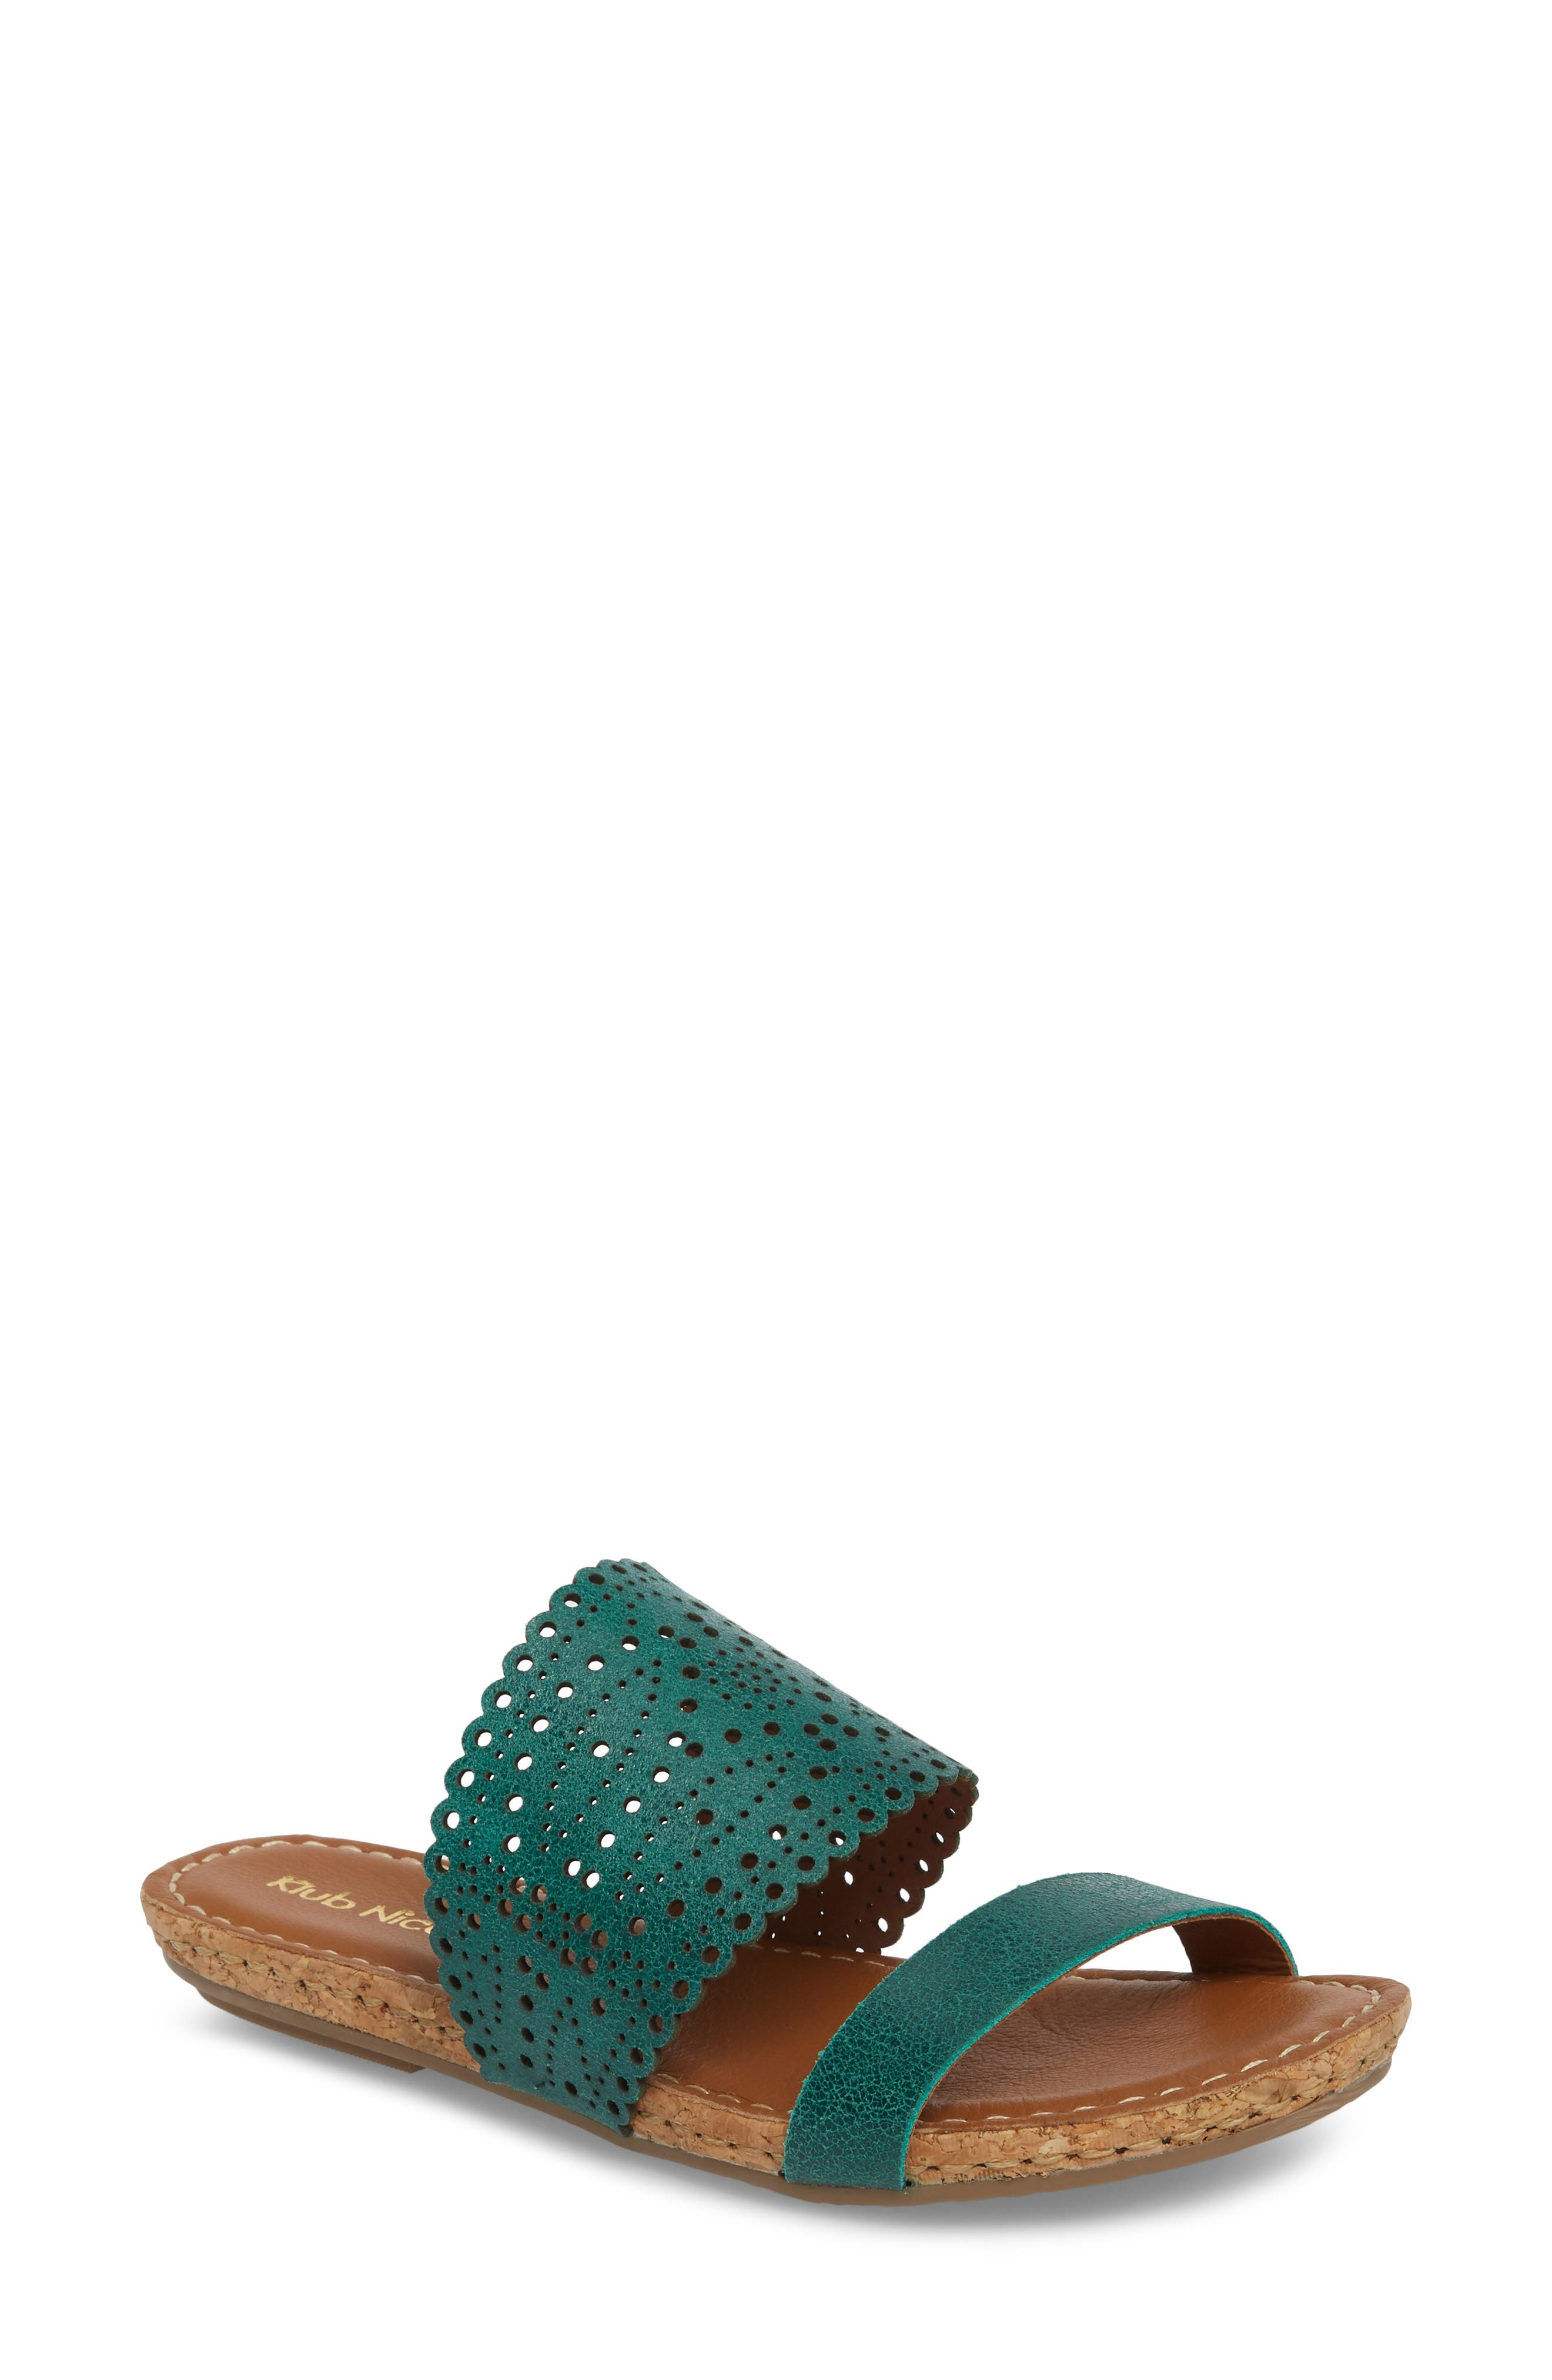 Ginette Perforated Slide Sandal,                             Main thumbnail 1, color,                             Ivy Leather